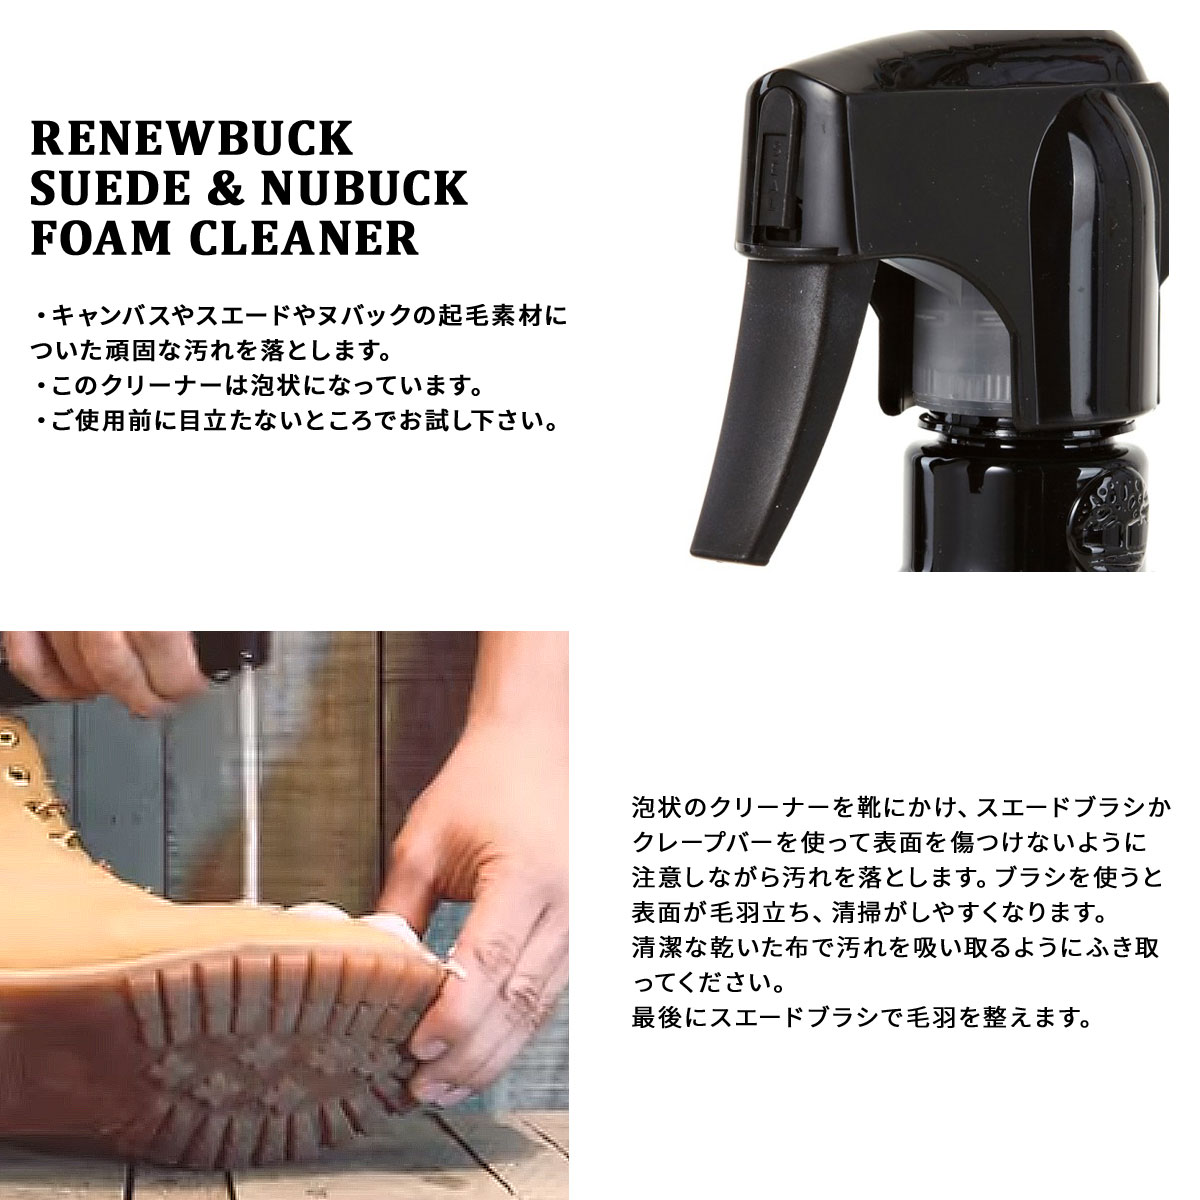 Timberland RENEWBUCK SUEDE & NUBUCK CLEANER A1FL4 Timberland Shoo care spray cleaner care product boots sneakers [192]